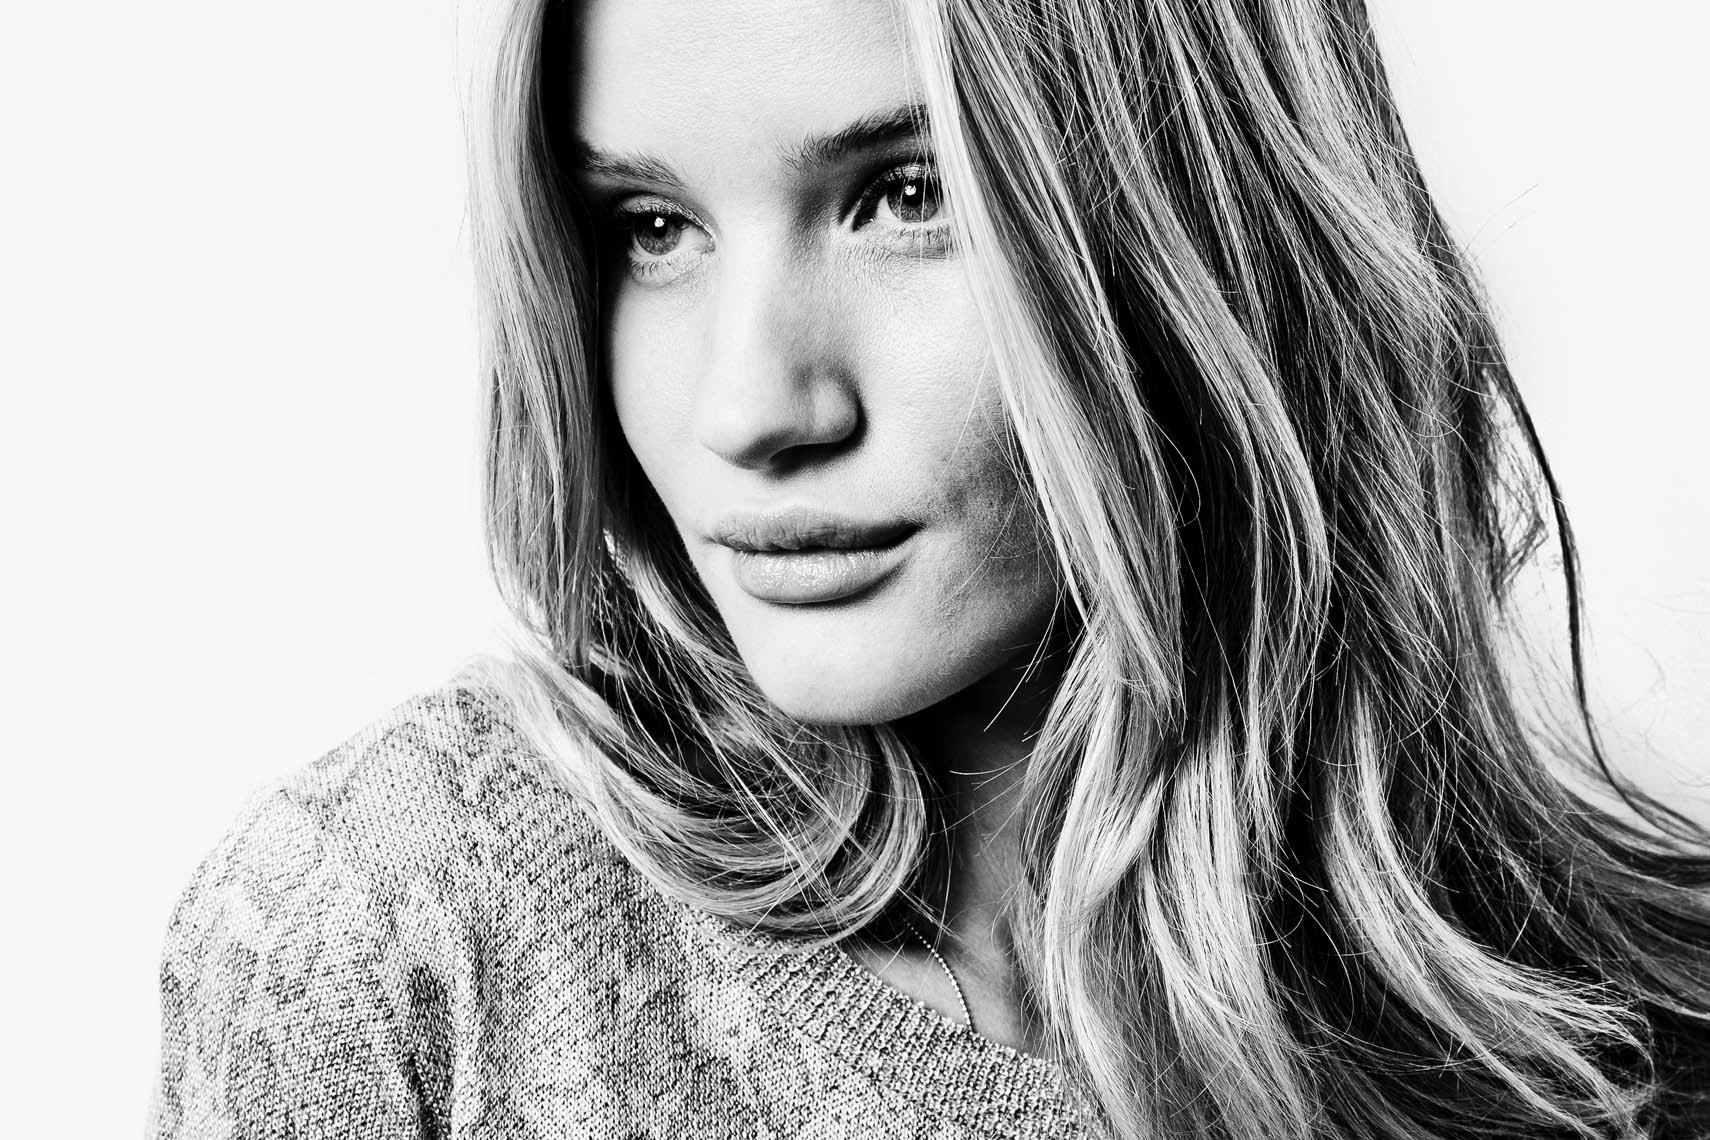 12_01_Estilo_Rosie_Huntington-Whiteley-26_8bit_sharp